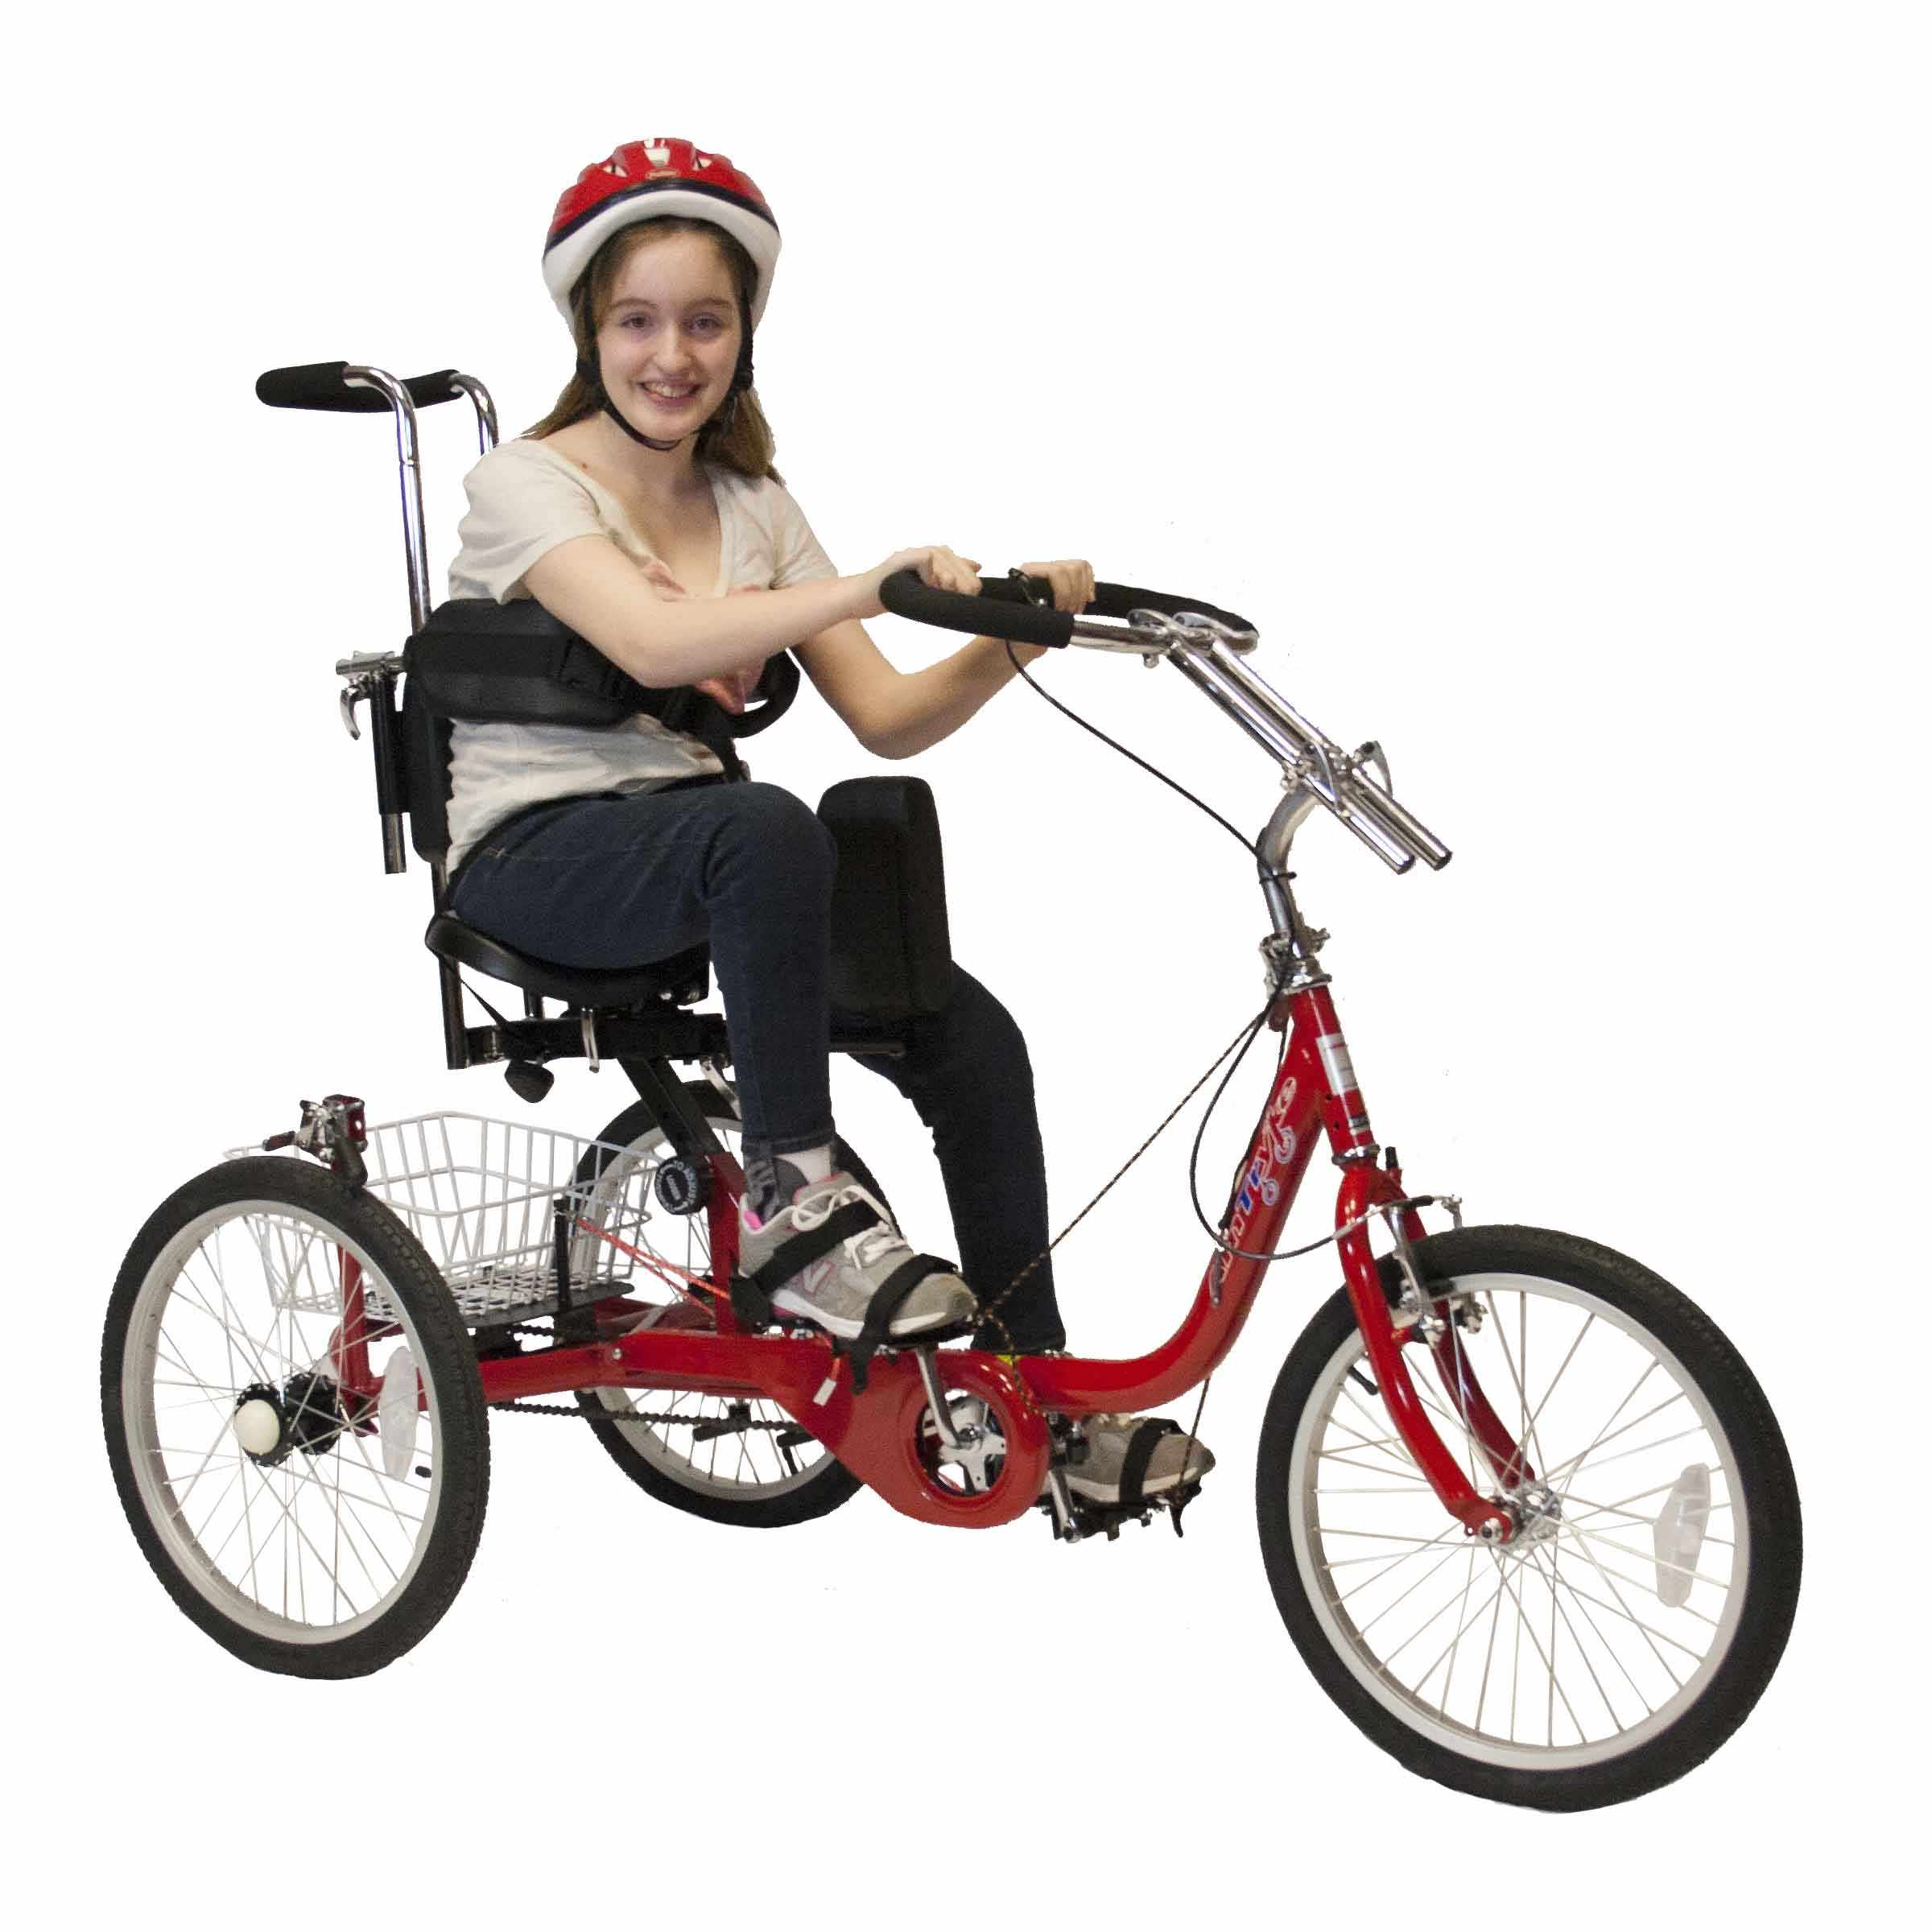 ProSeries 1416 tricycle with 1400 seating system